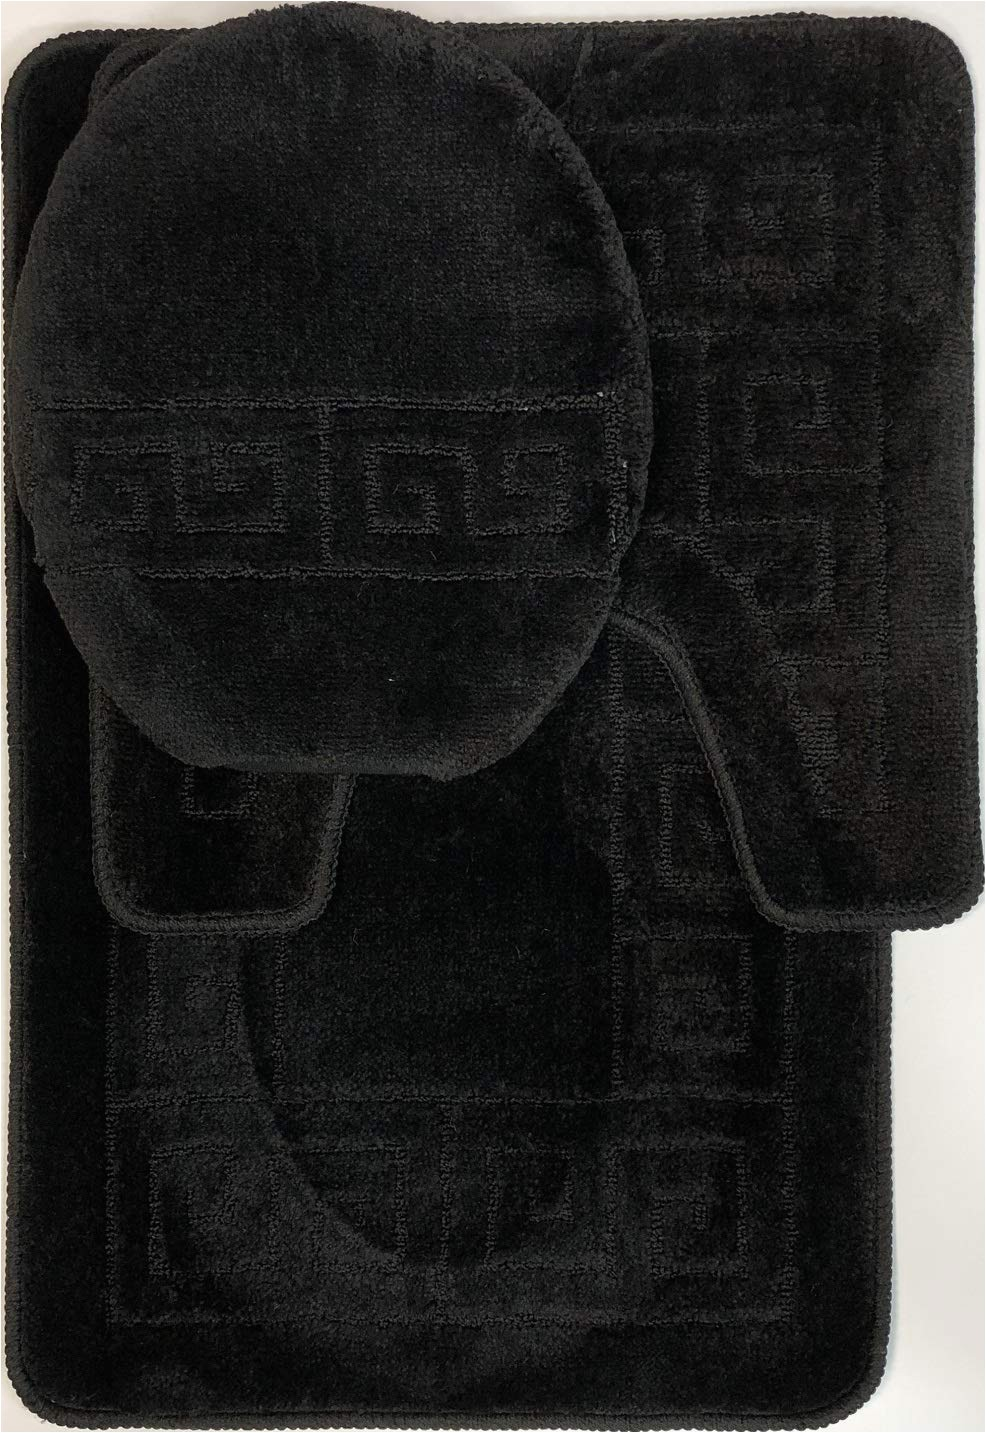 wpm world products mart 3 piece bath rug set pattern bathroom rug 20 x 32 large contour mat 20 x 20 with lid cover black